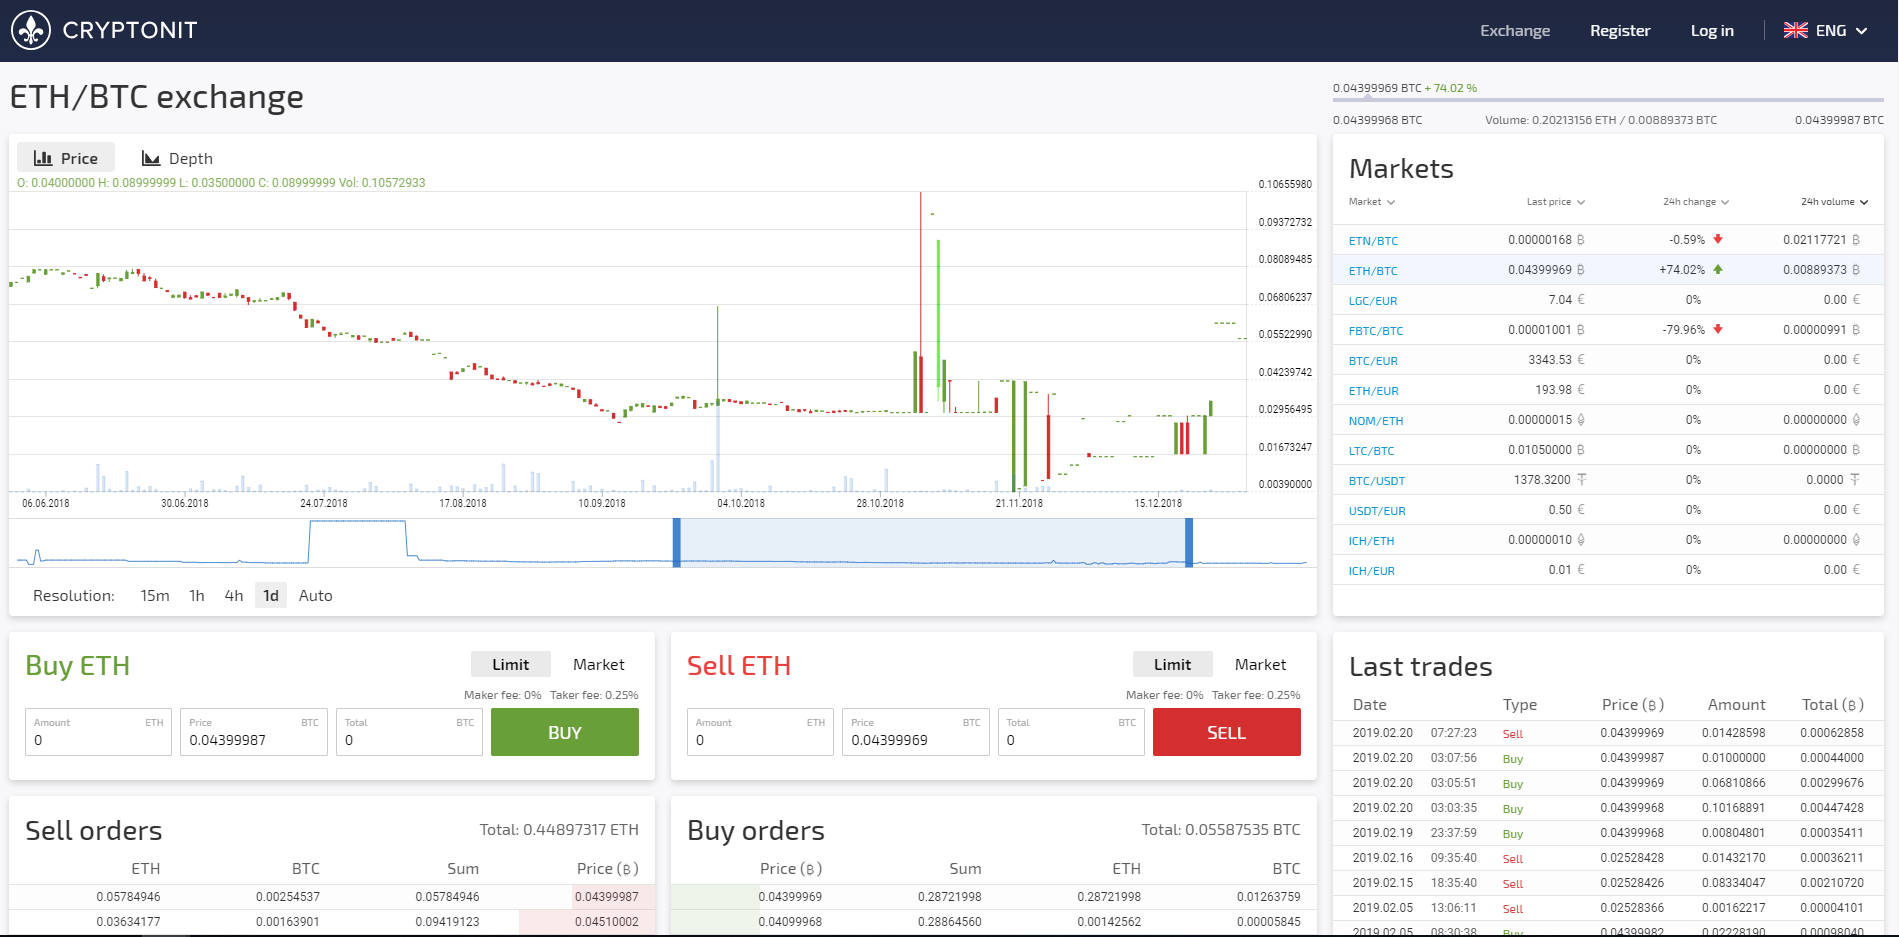 Cryptonit Trading View